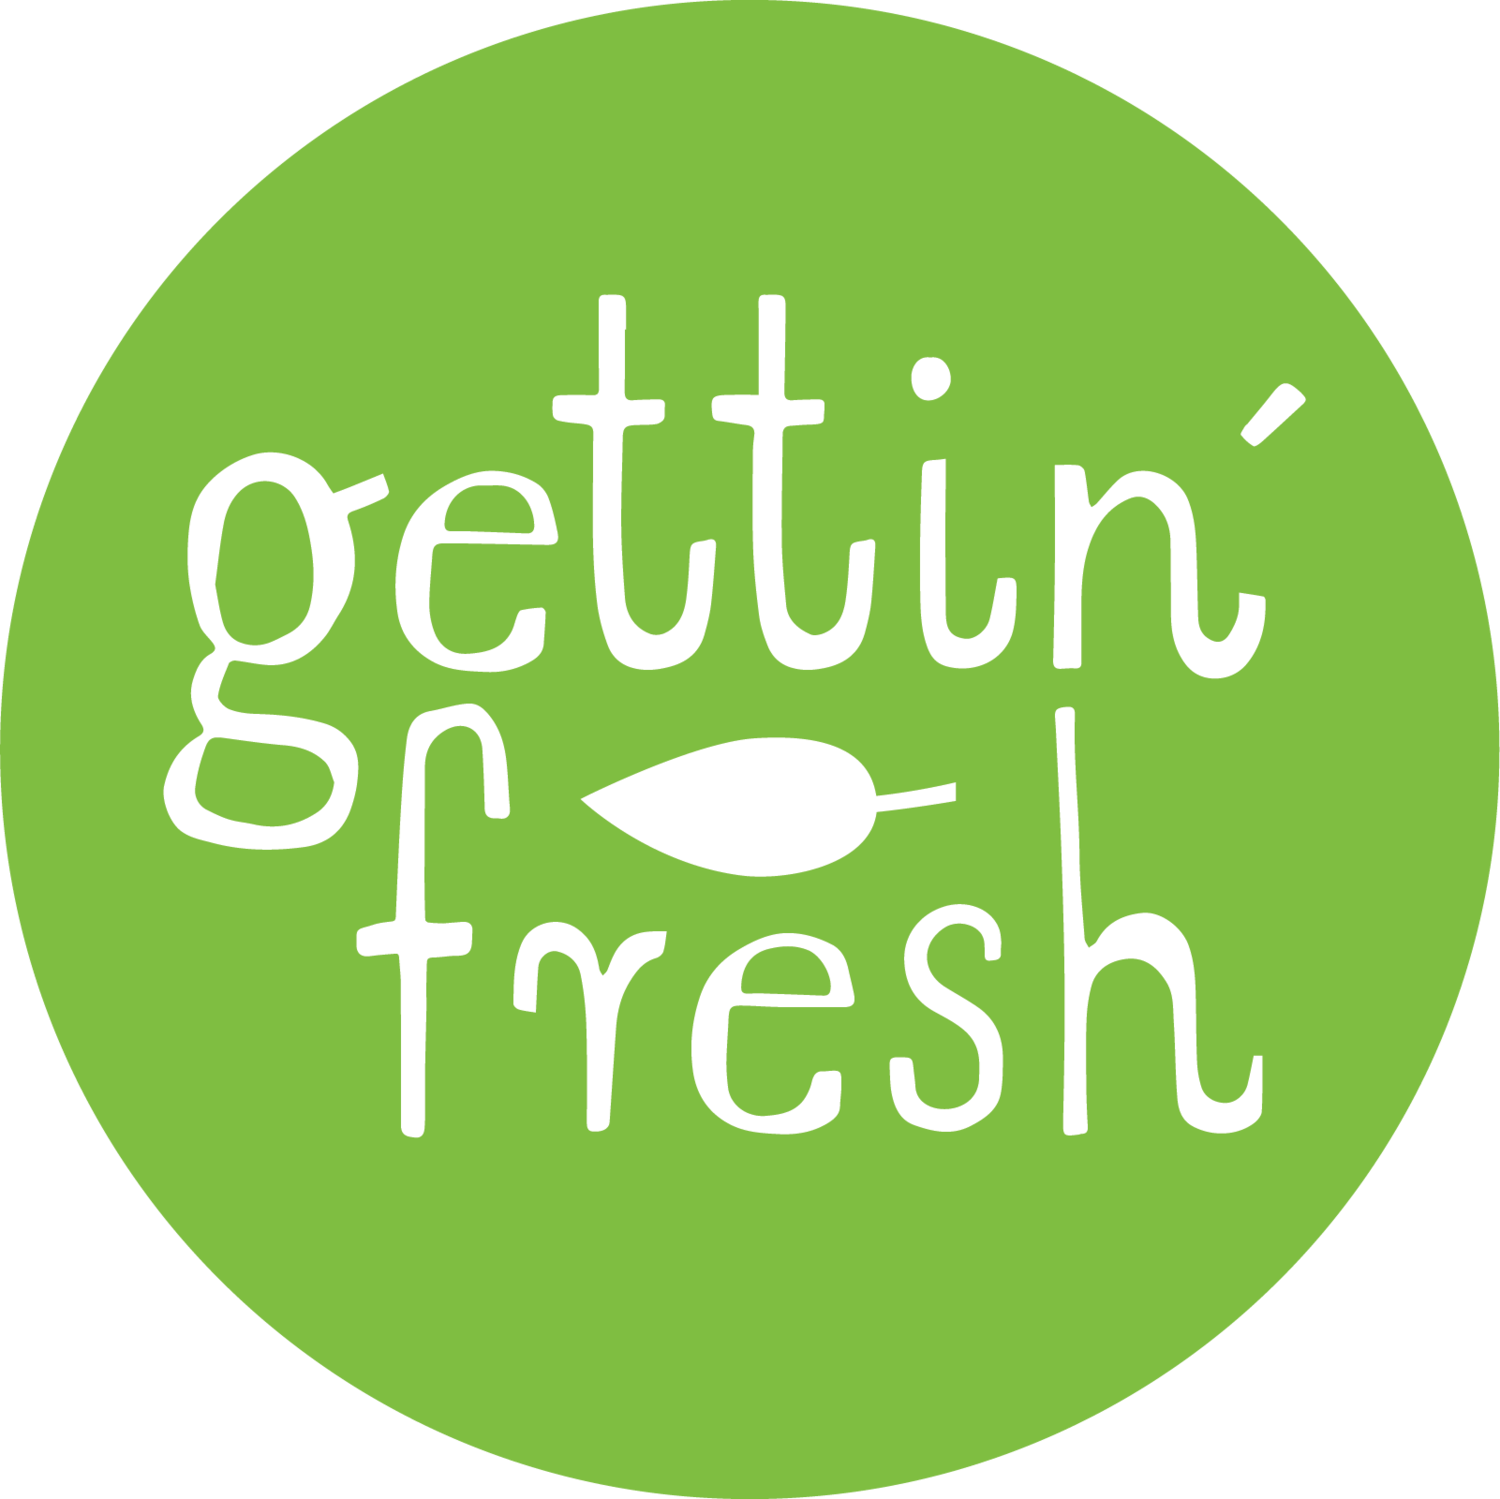 Gettin' Fresh Offers Premier Food Truck Catering Services in Grand Rapids, Michigan